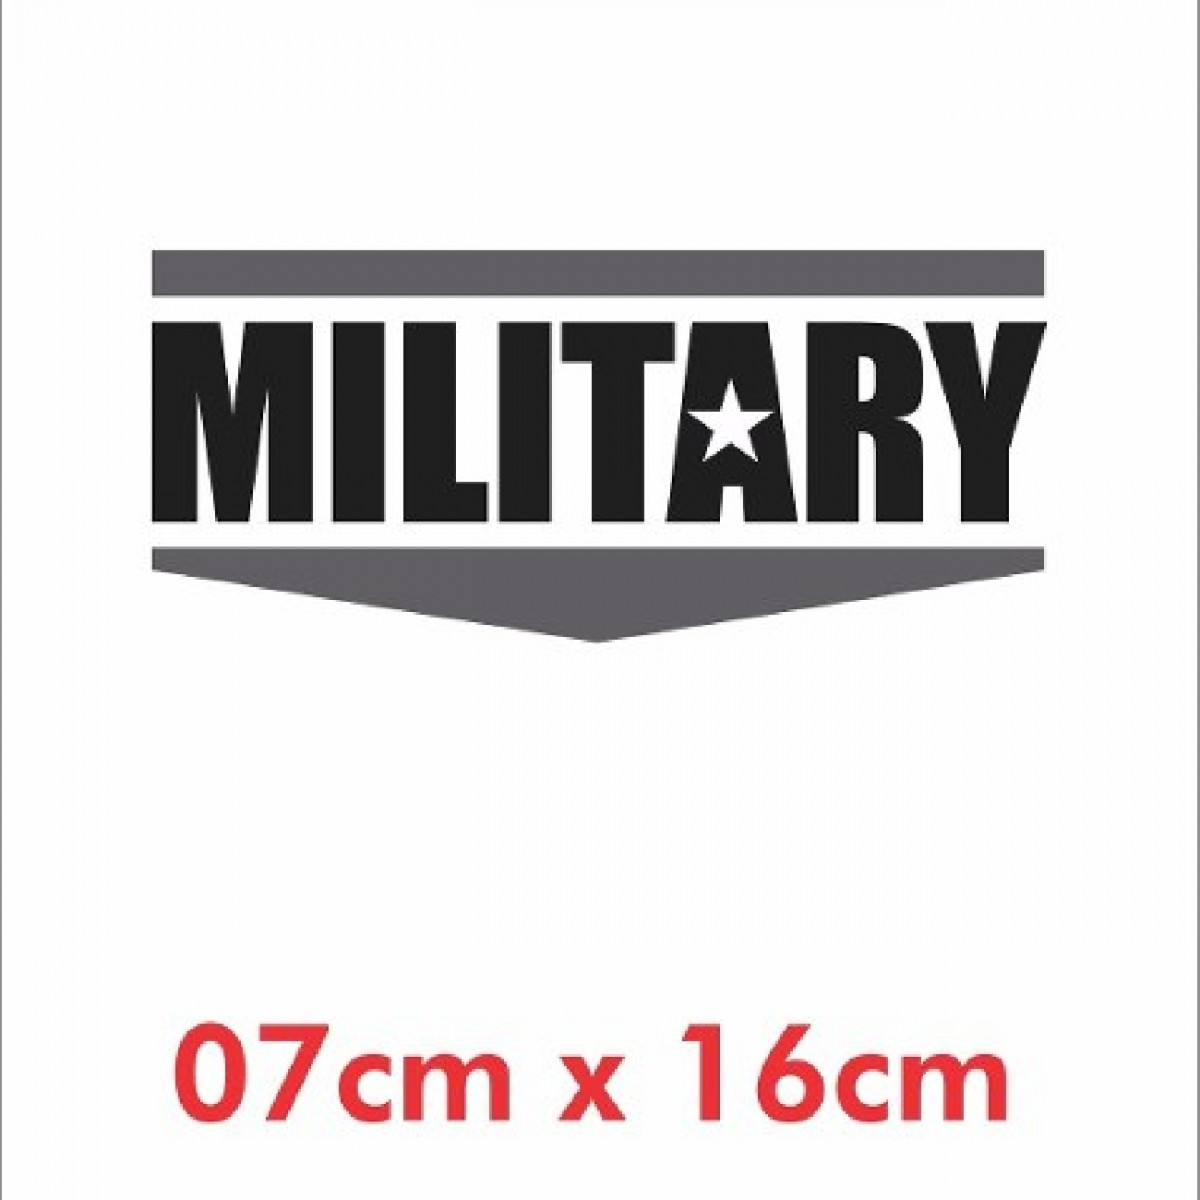 Emblema Adesivo Military Jeep Willys Renegade Cherokee Ad10